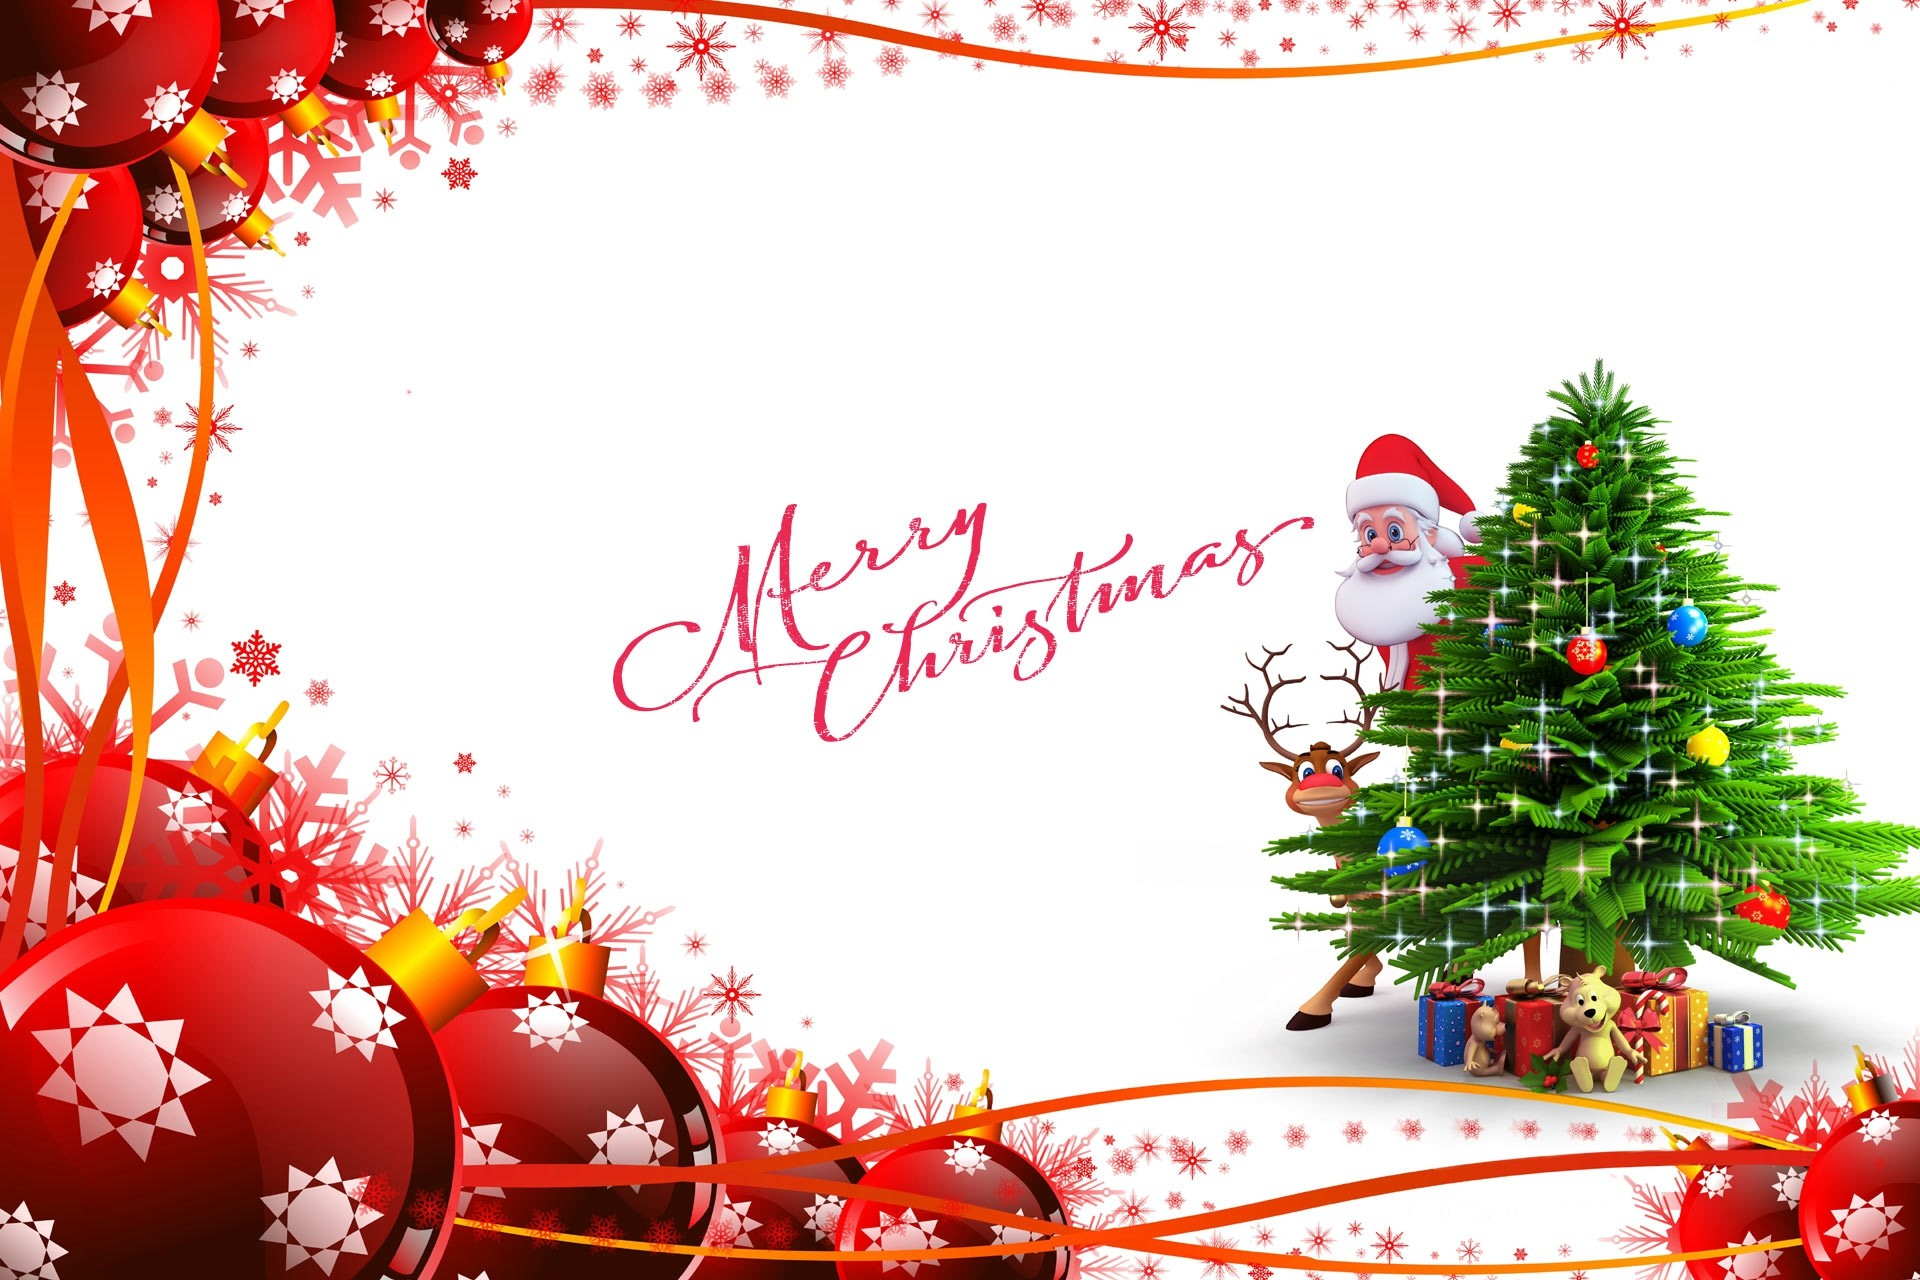 1920x1280 Merry Christmas HD Wallpaper.